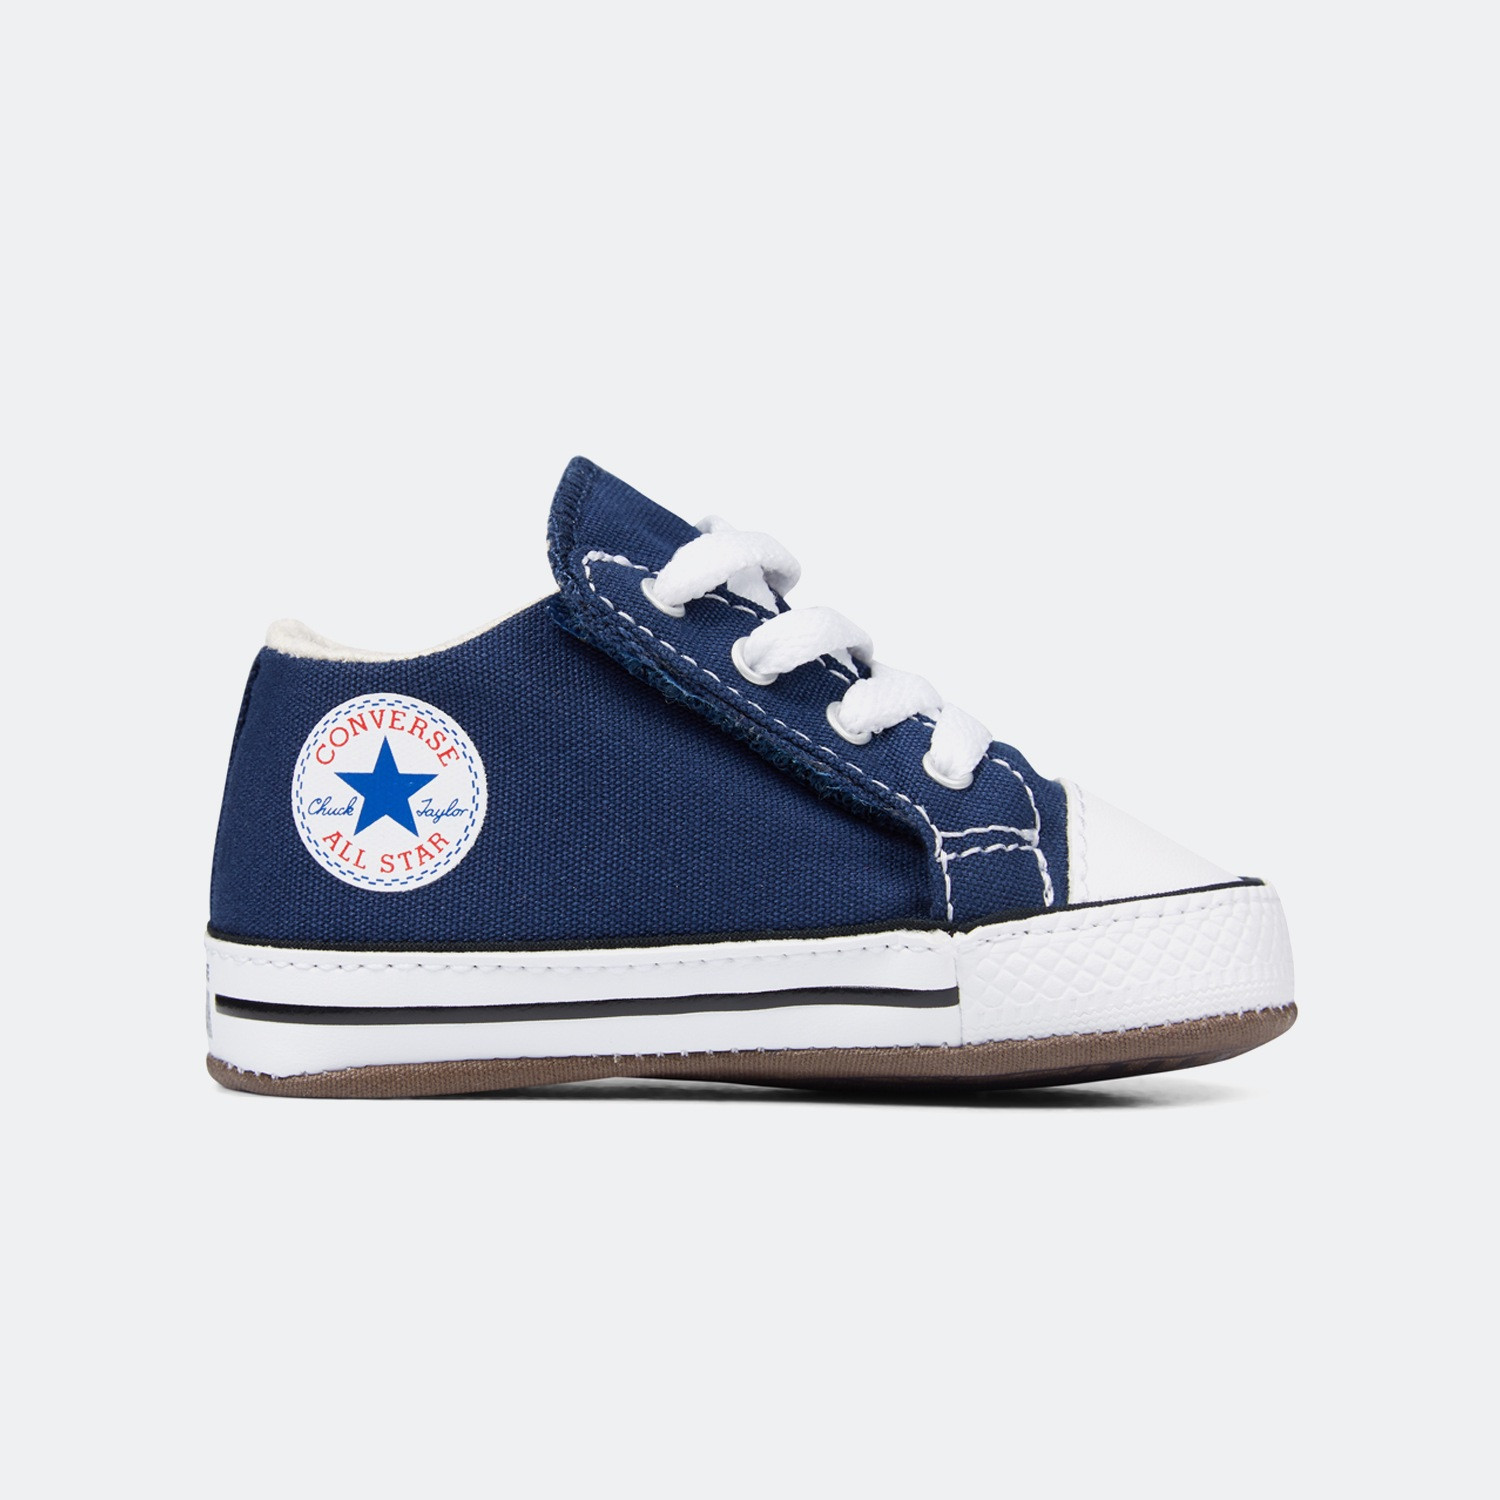 Converse Chuck Taylor All Star Βρεφικά Παπούτσια (9000039308_4162)